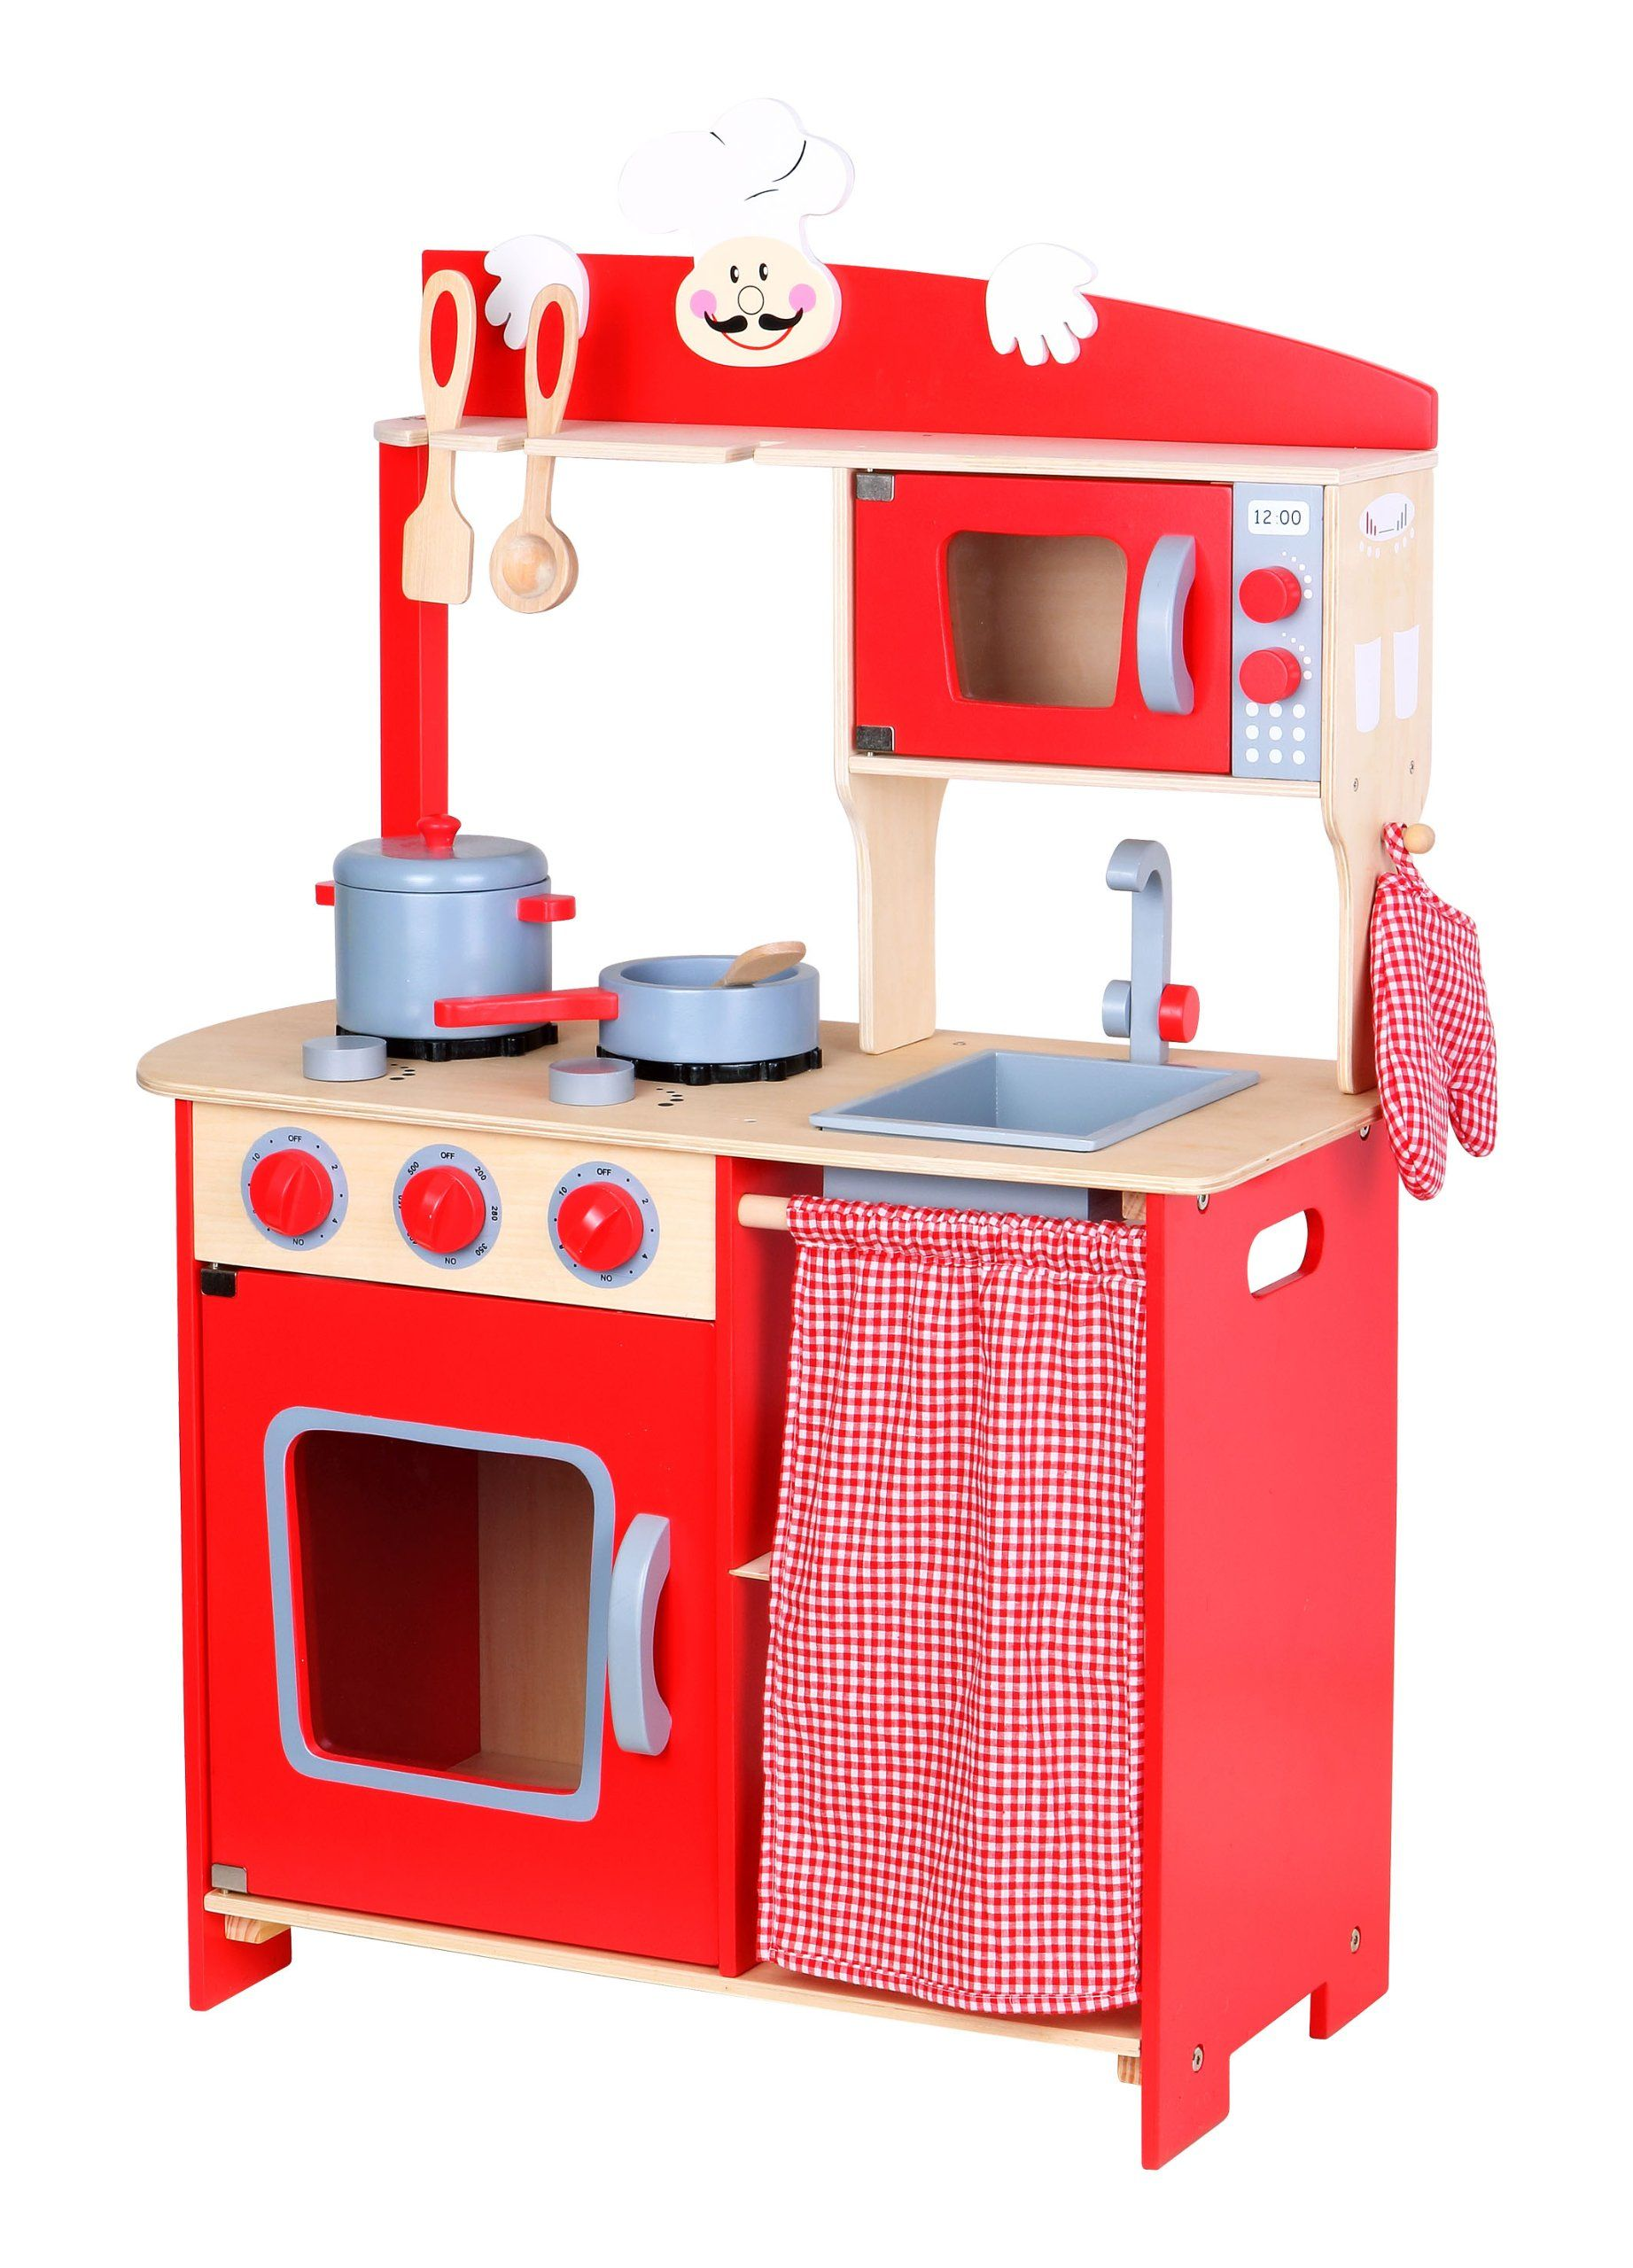 Cucina Legno Imaginarium Leomark Mini Wooden Kitchen Chef 59 99 Unisex Wooden Toy